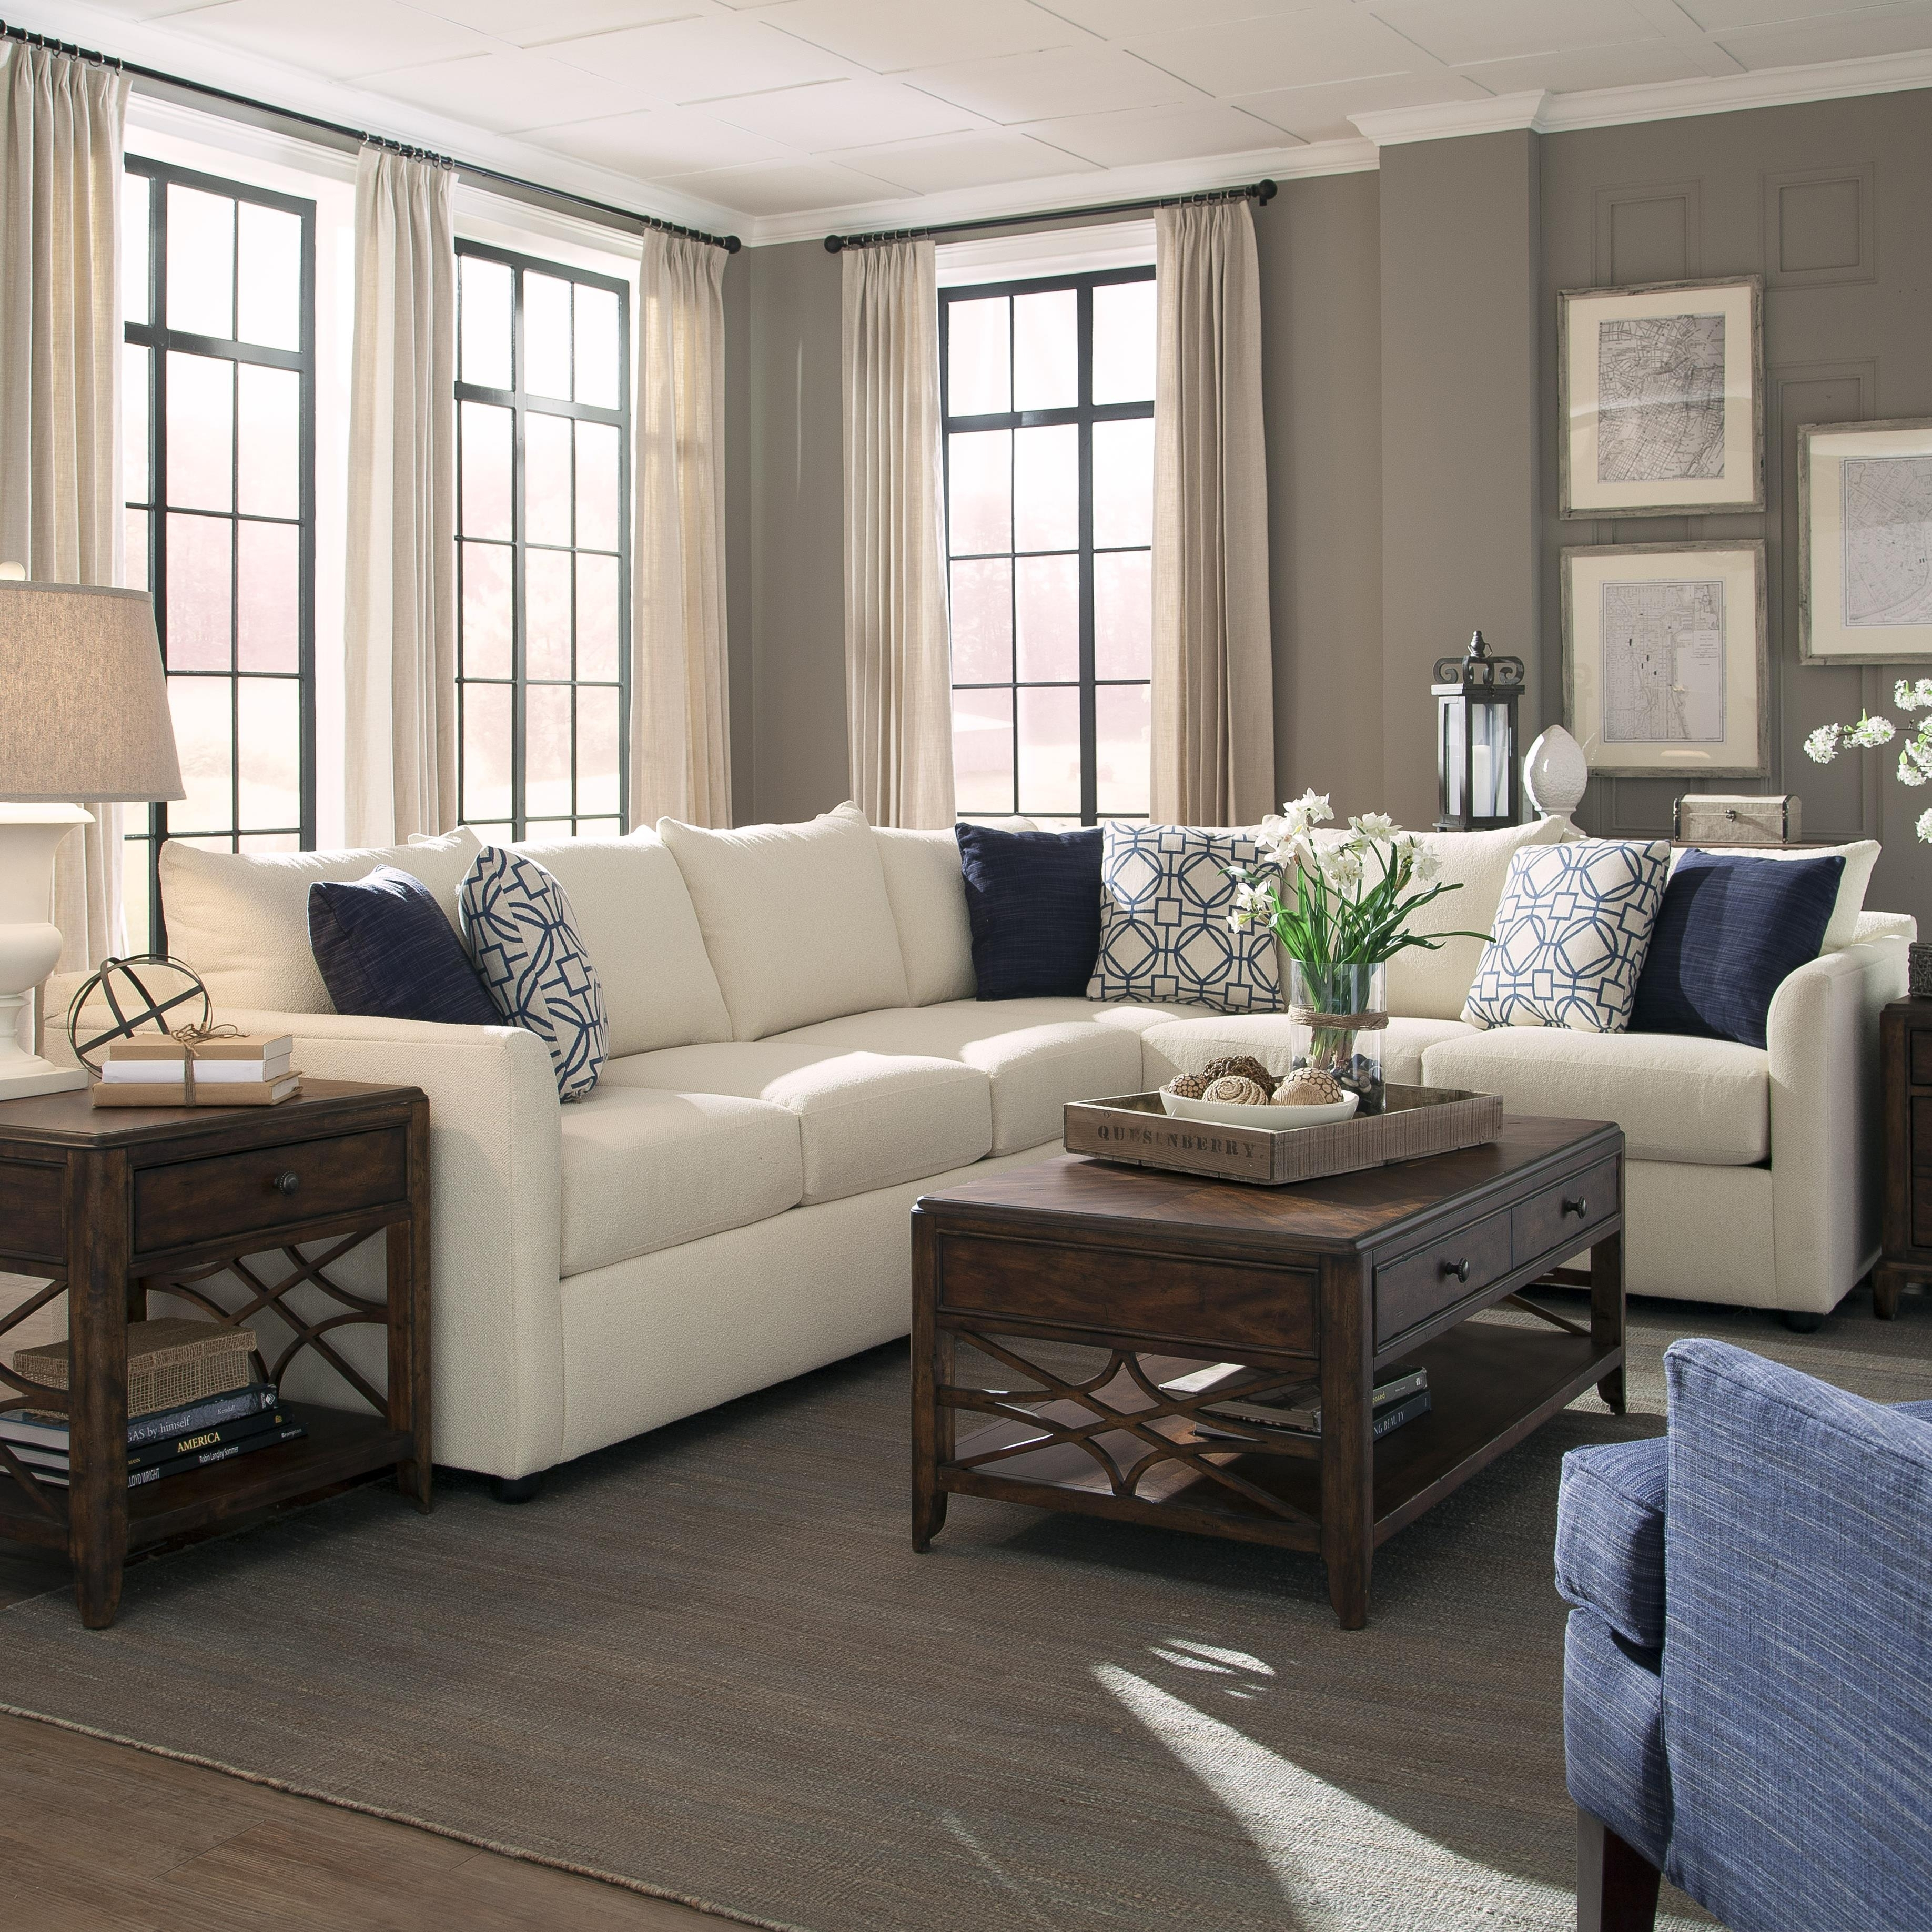 A Beautiful 2 Piece Sectional From Trisha Yearwood's Home Collection With Sectional Sofas At Atlanta (Image 1 of 10)